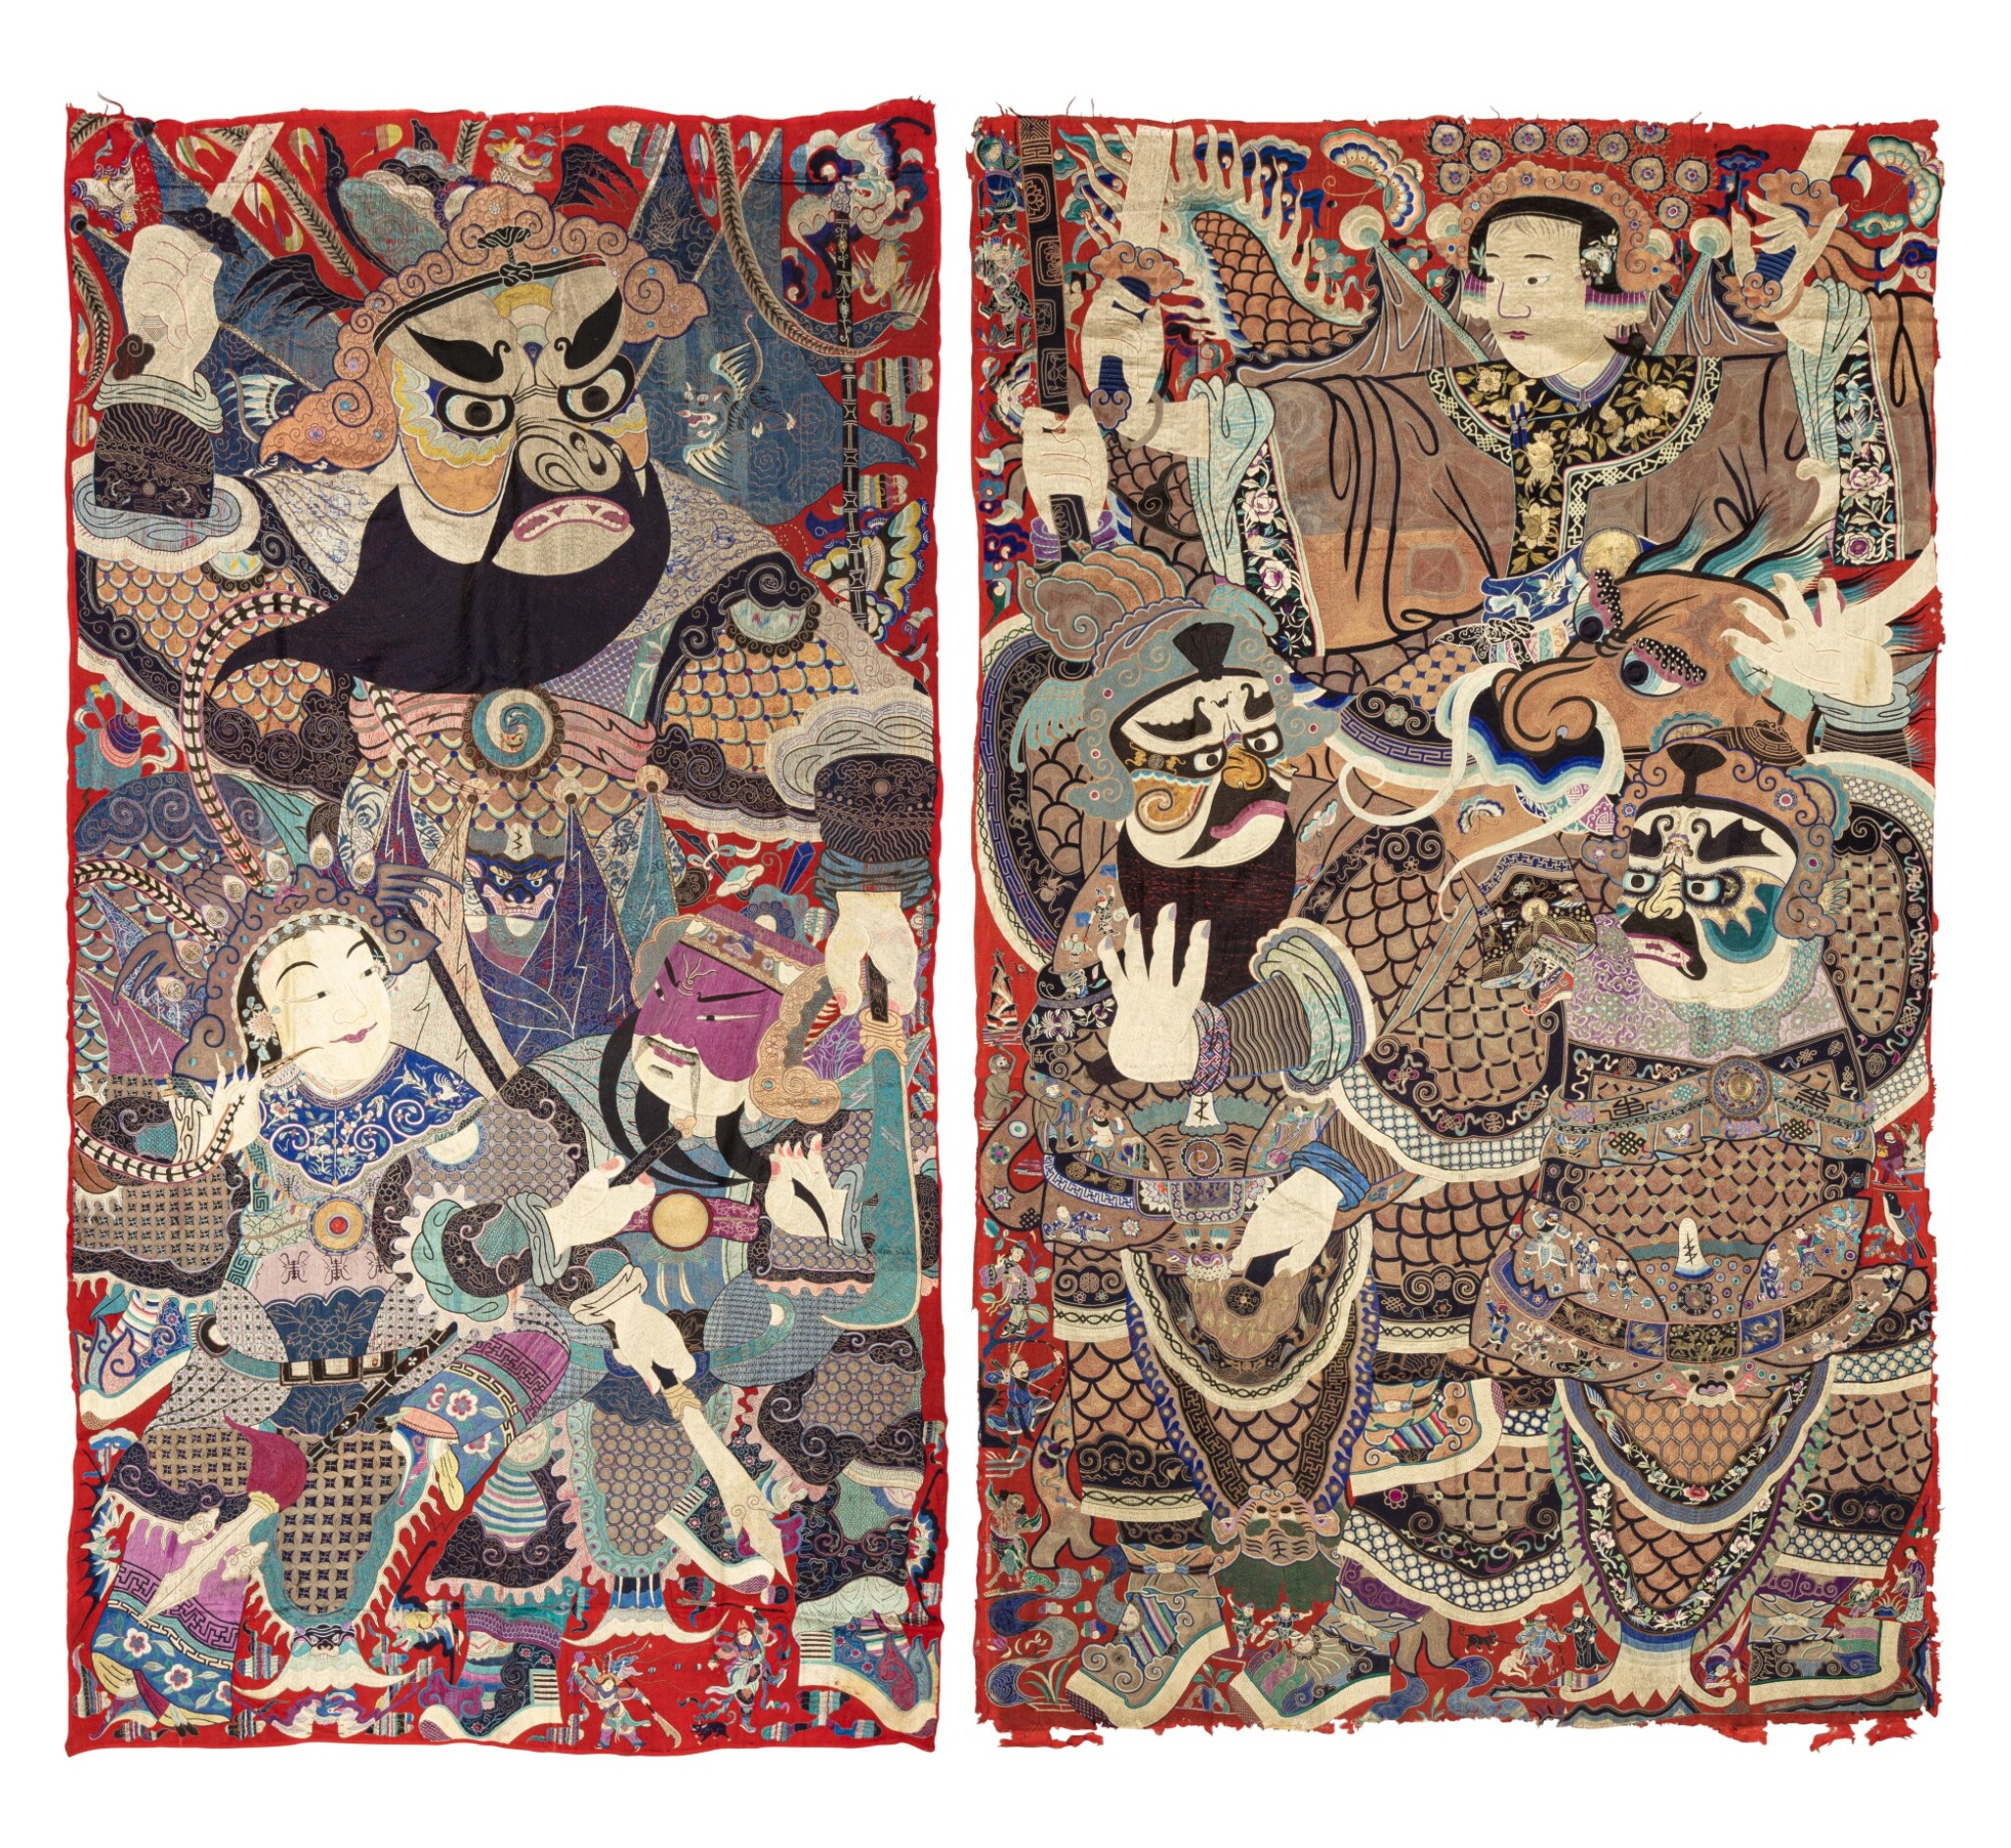 View 1 of Lot 74. Deux grandes tentures d'opéra brodées circa 1900 | 約1900年 刺繡戲曲人物圖掛幅兩件 | Two large Chinese Opera embroideries, ca. 1900..